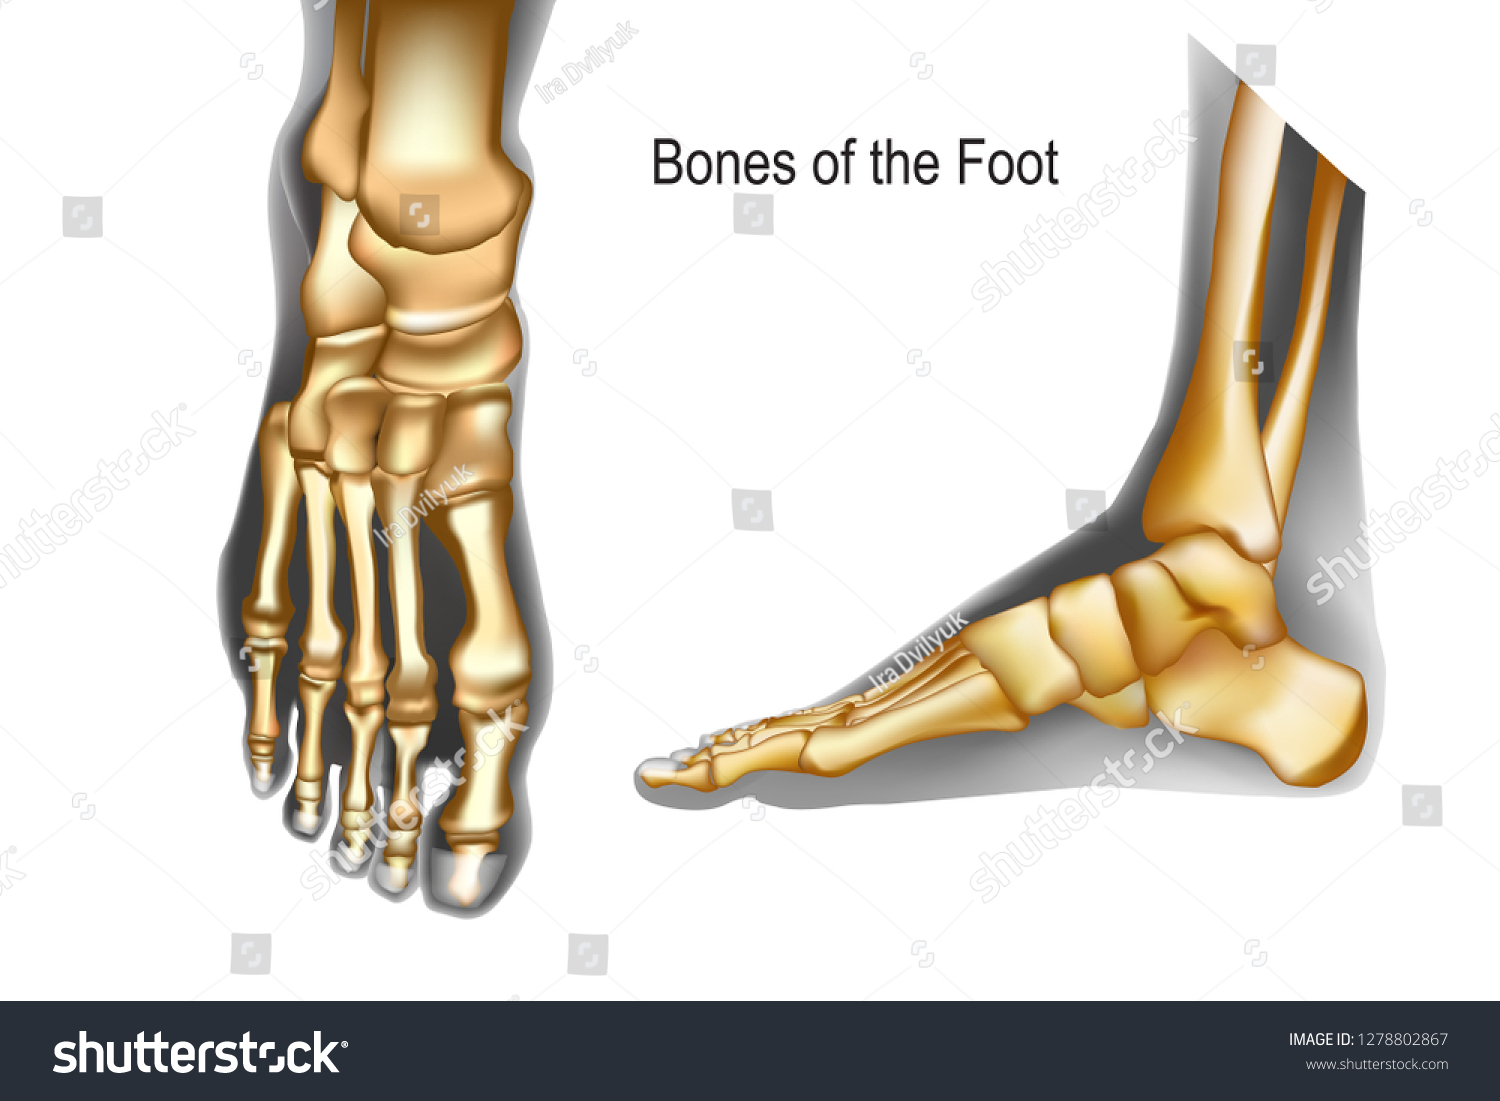 Bones Foot Top Medial View Realistic Stock Vector Royalty Free 1278802867